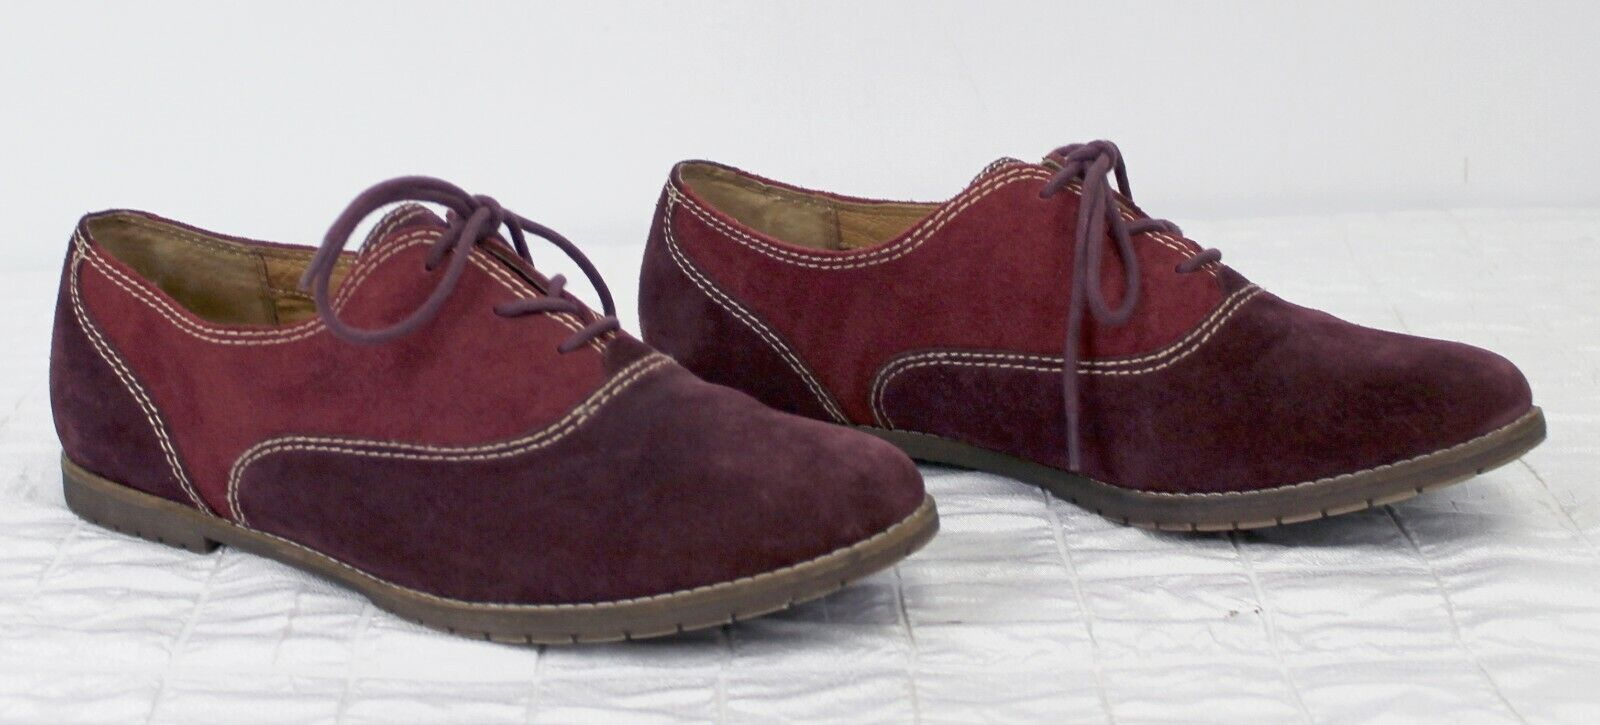 Sofft Alexandra Suede Oxford Shoes Red Burgundy Womens Sz 10 Leather 2-Tone